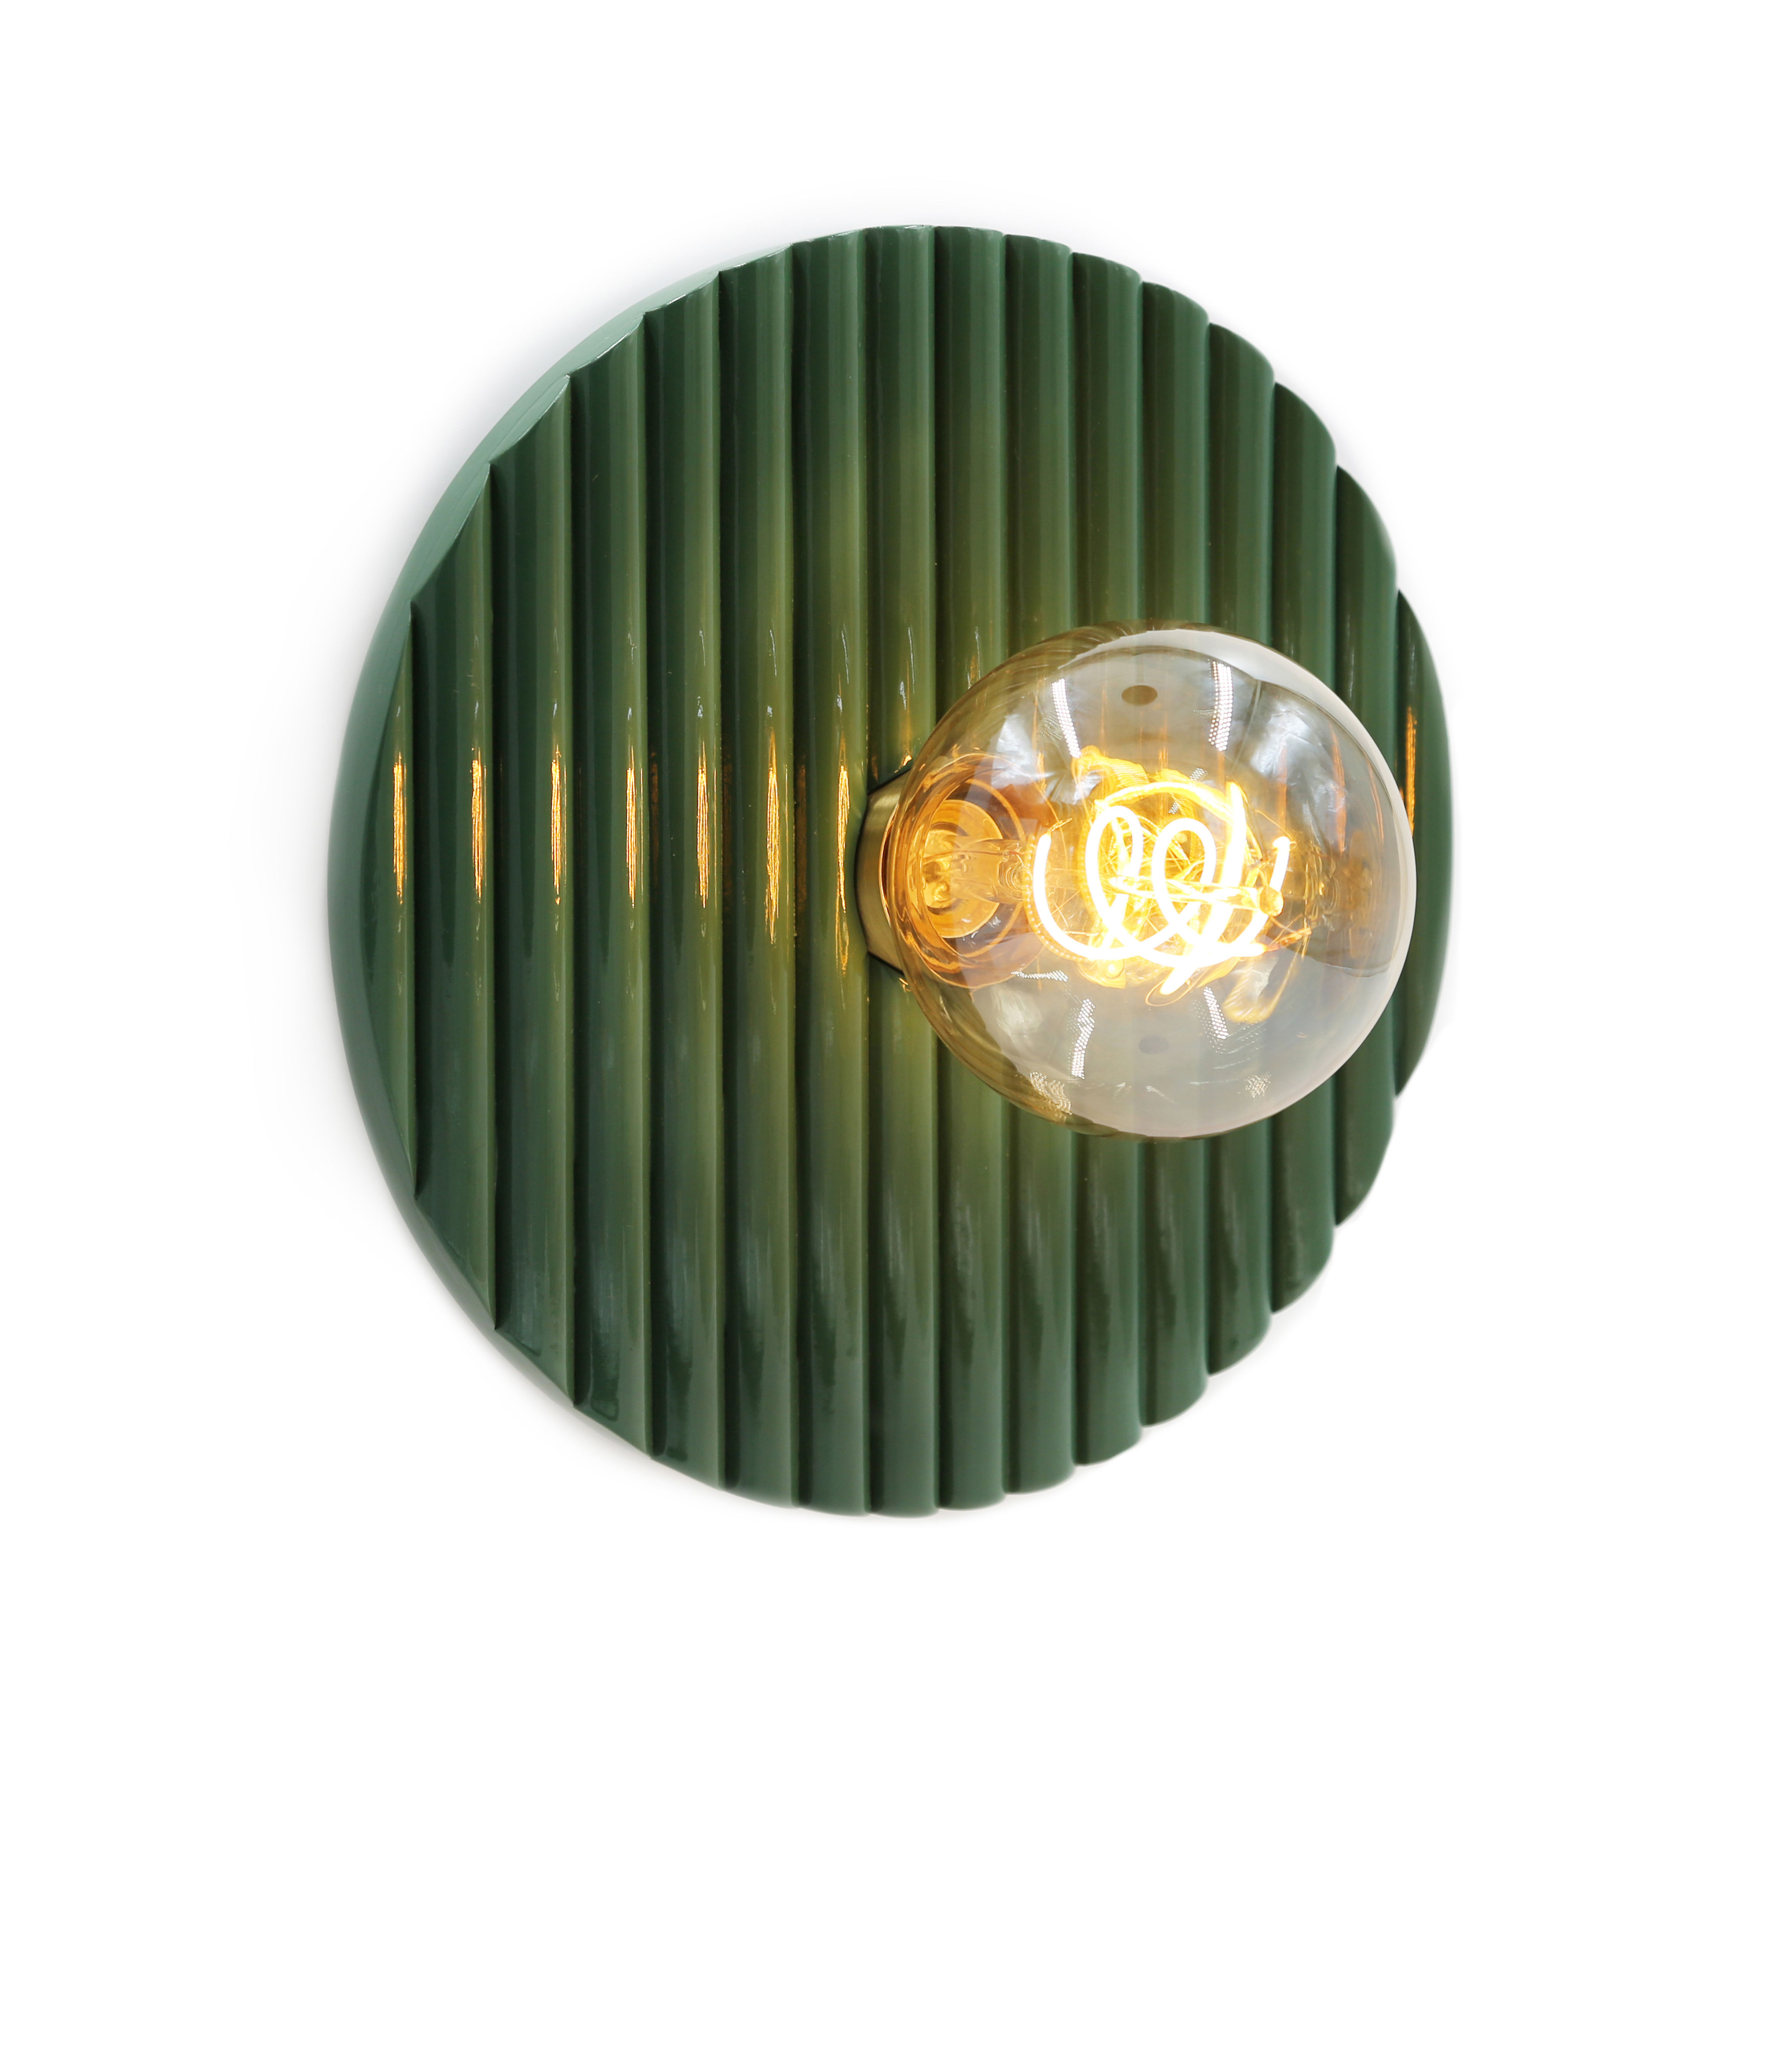 Lighting - Wall Lights - Riviera Wall light - / Wood - ø 25 cm by Maison Sarah Lavoine - Green - Lacquered rattan